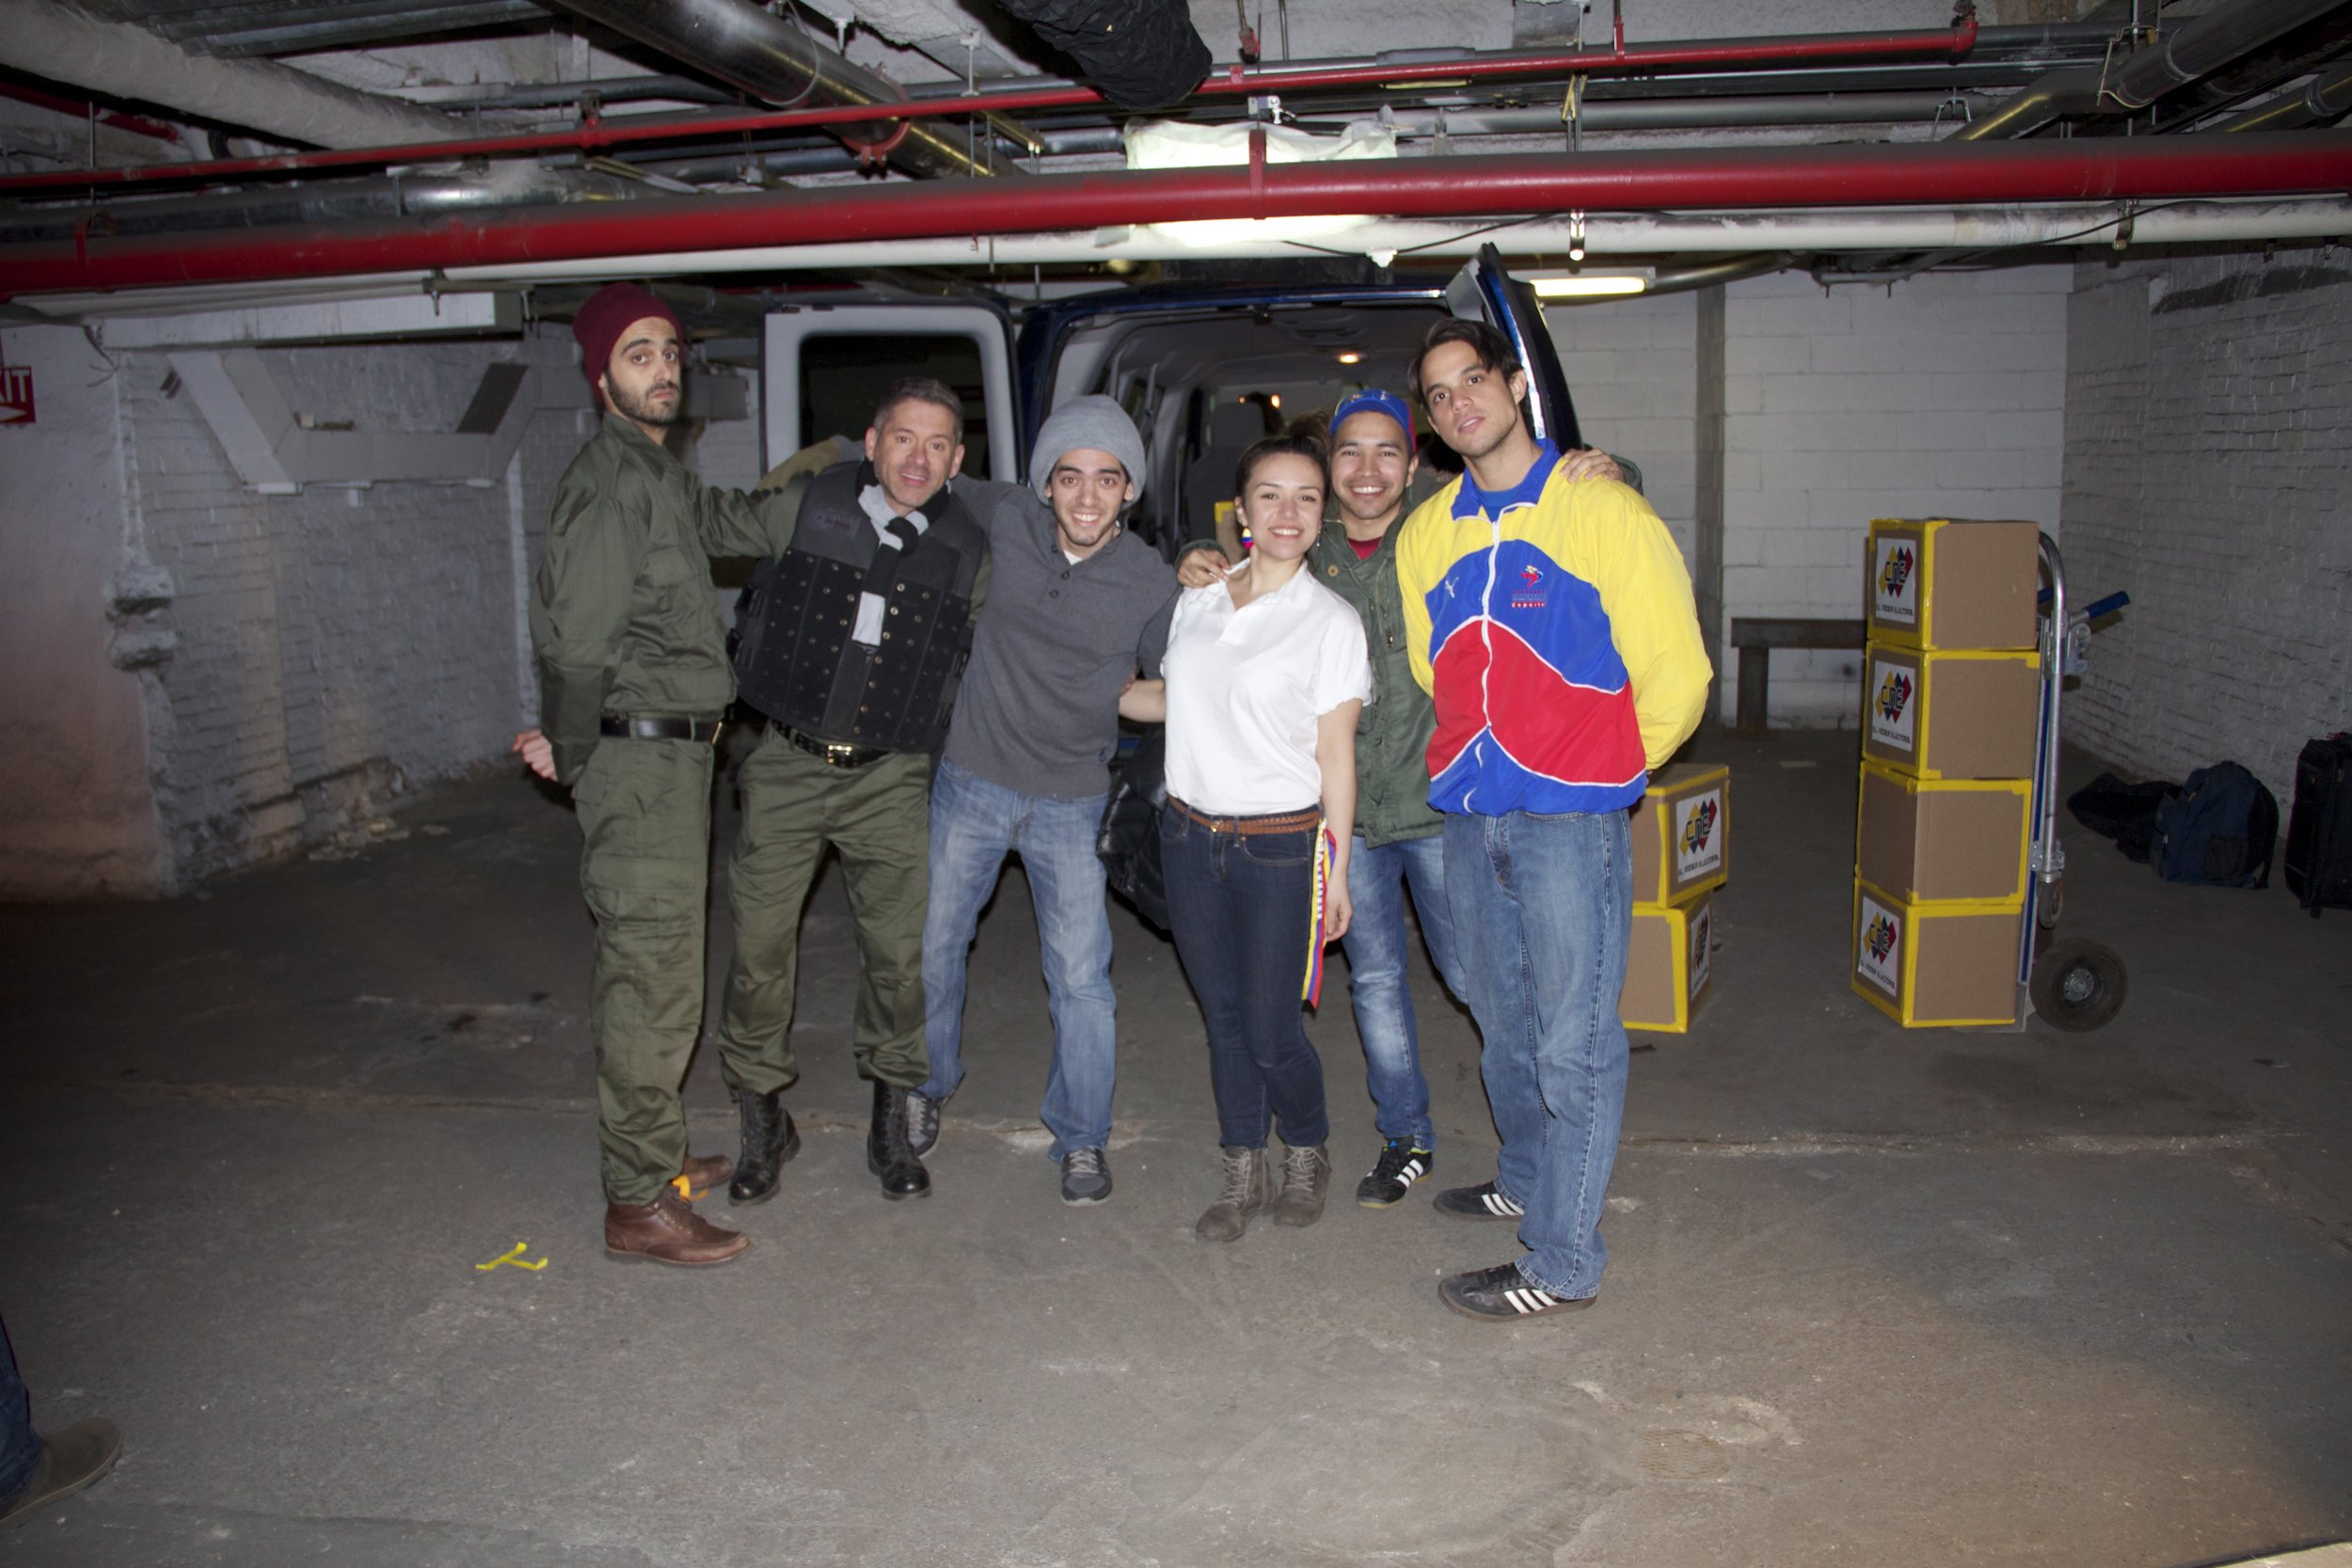 The cast of A New Civilization are all smiles after filming a tense scene. Cast from left to right include: Stefano Fossa (Officer Gonzalez), Marcelo Rodriguez (The Chief), Williams Naranjo (Writer/Director), Shanty Rodrigues (Ana), Nelson Rangel (Antonio) and Andres Sosa (Alfredo).